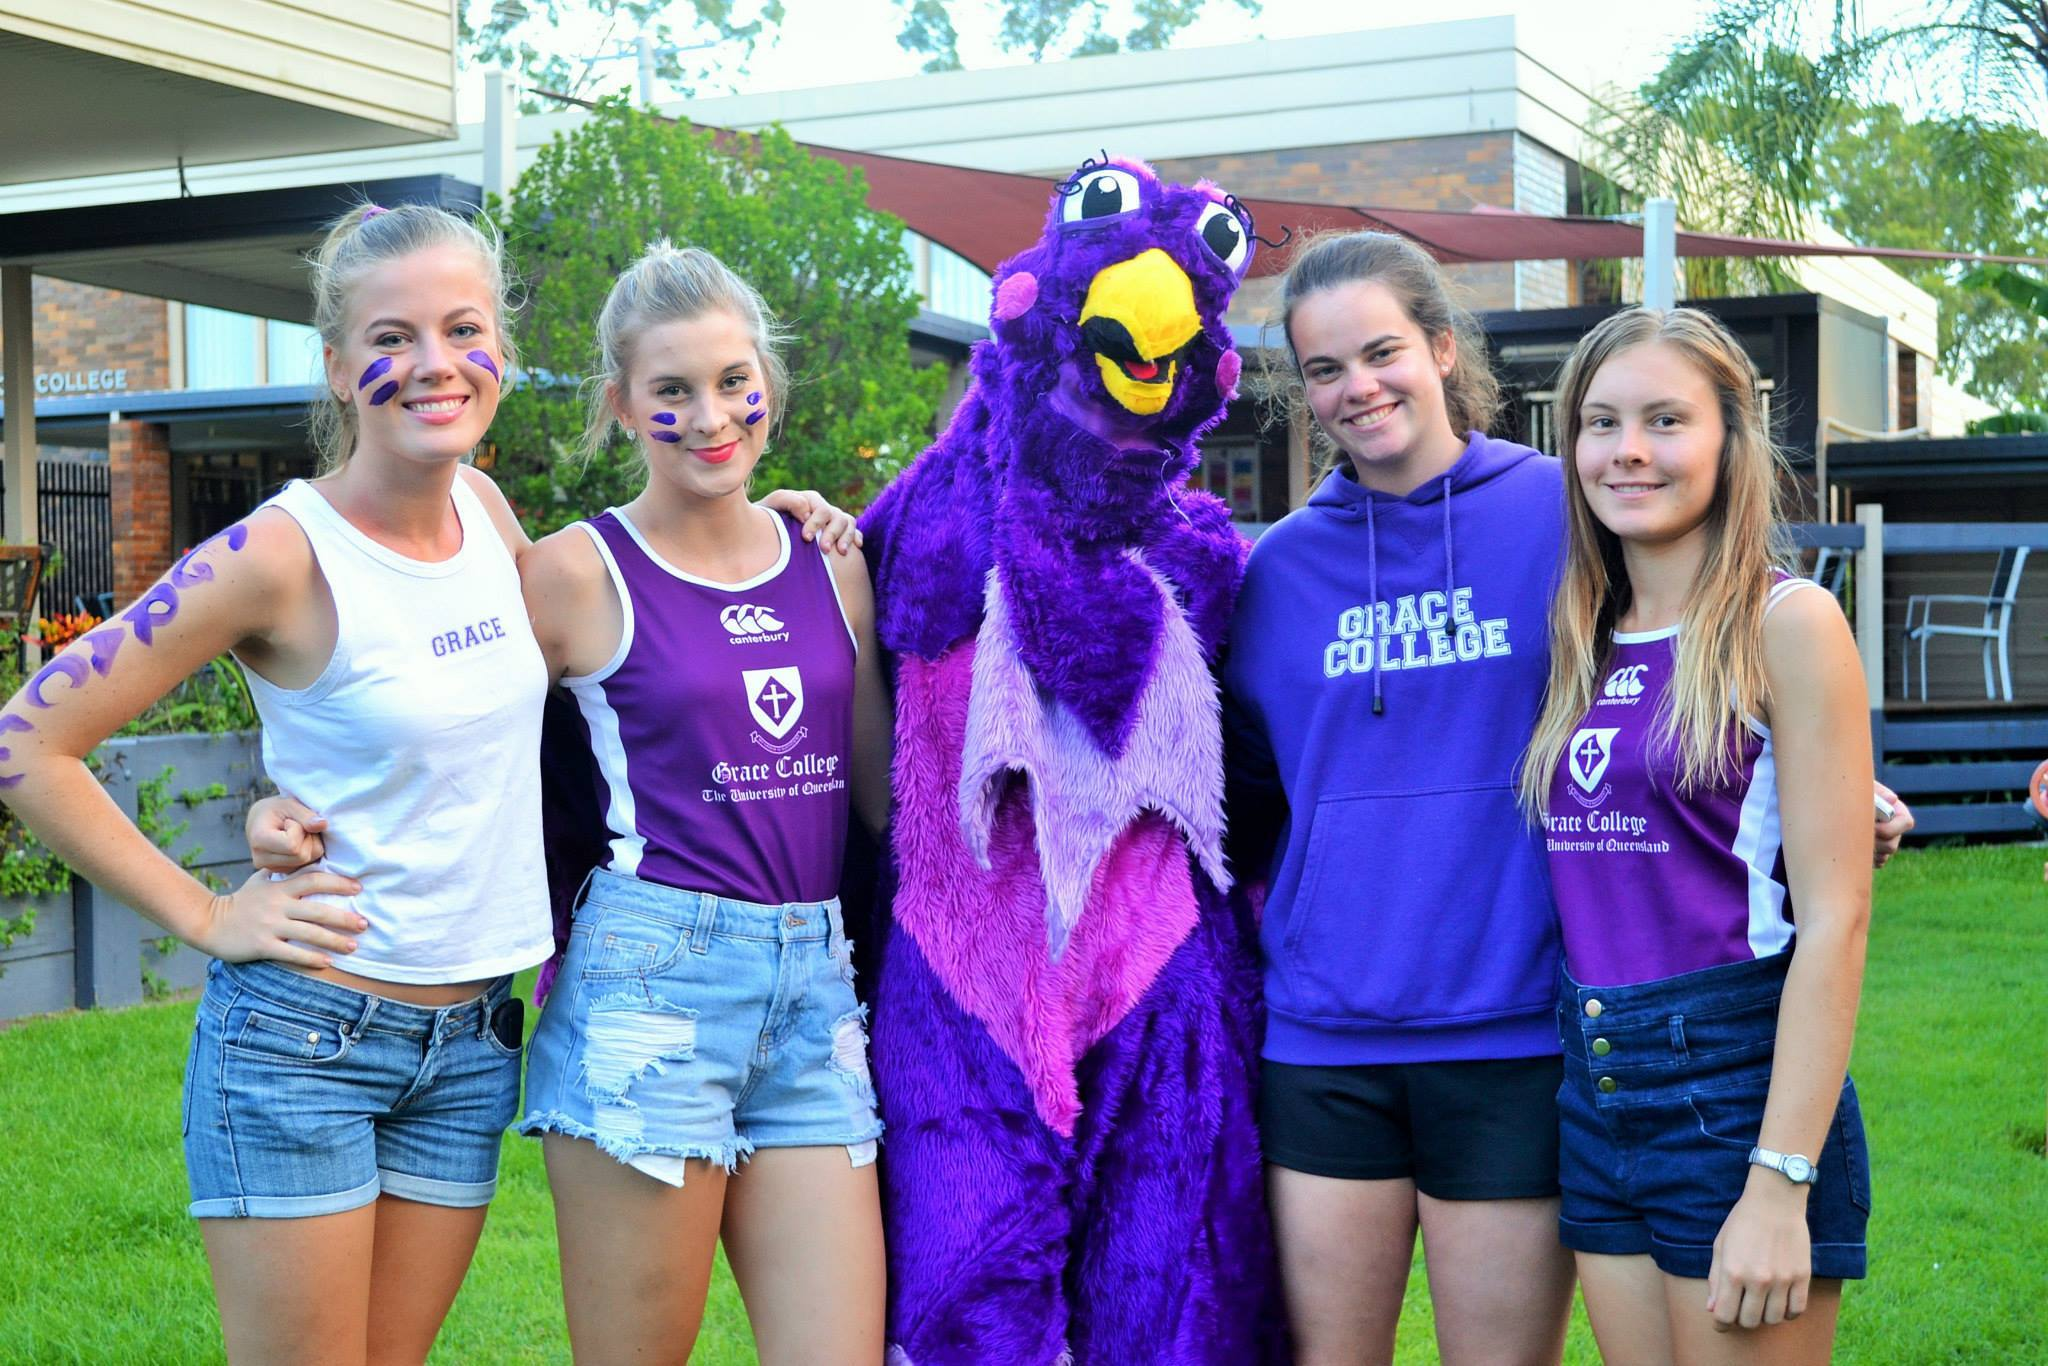 Grace College supporters with mascot